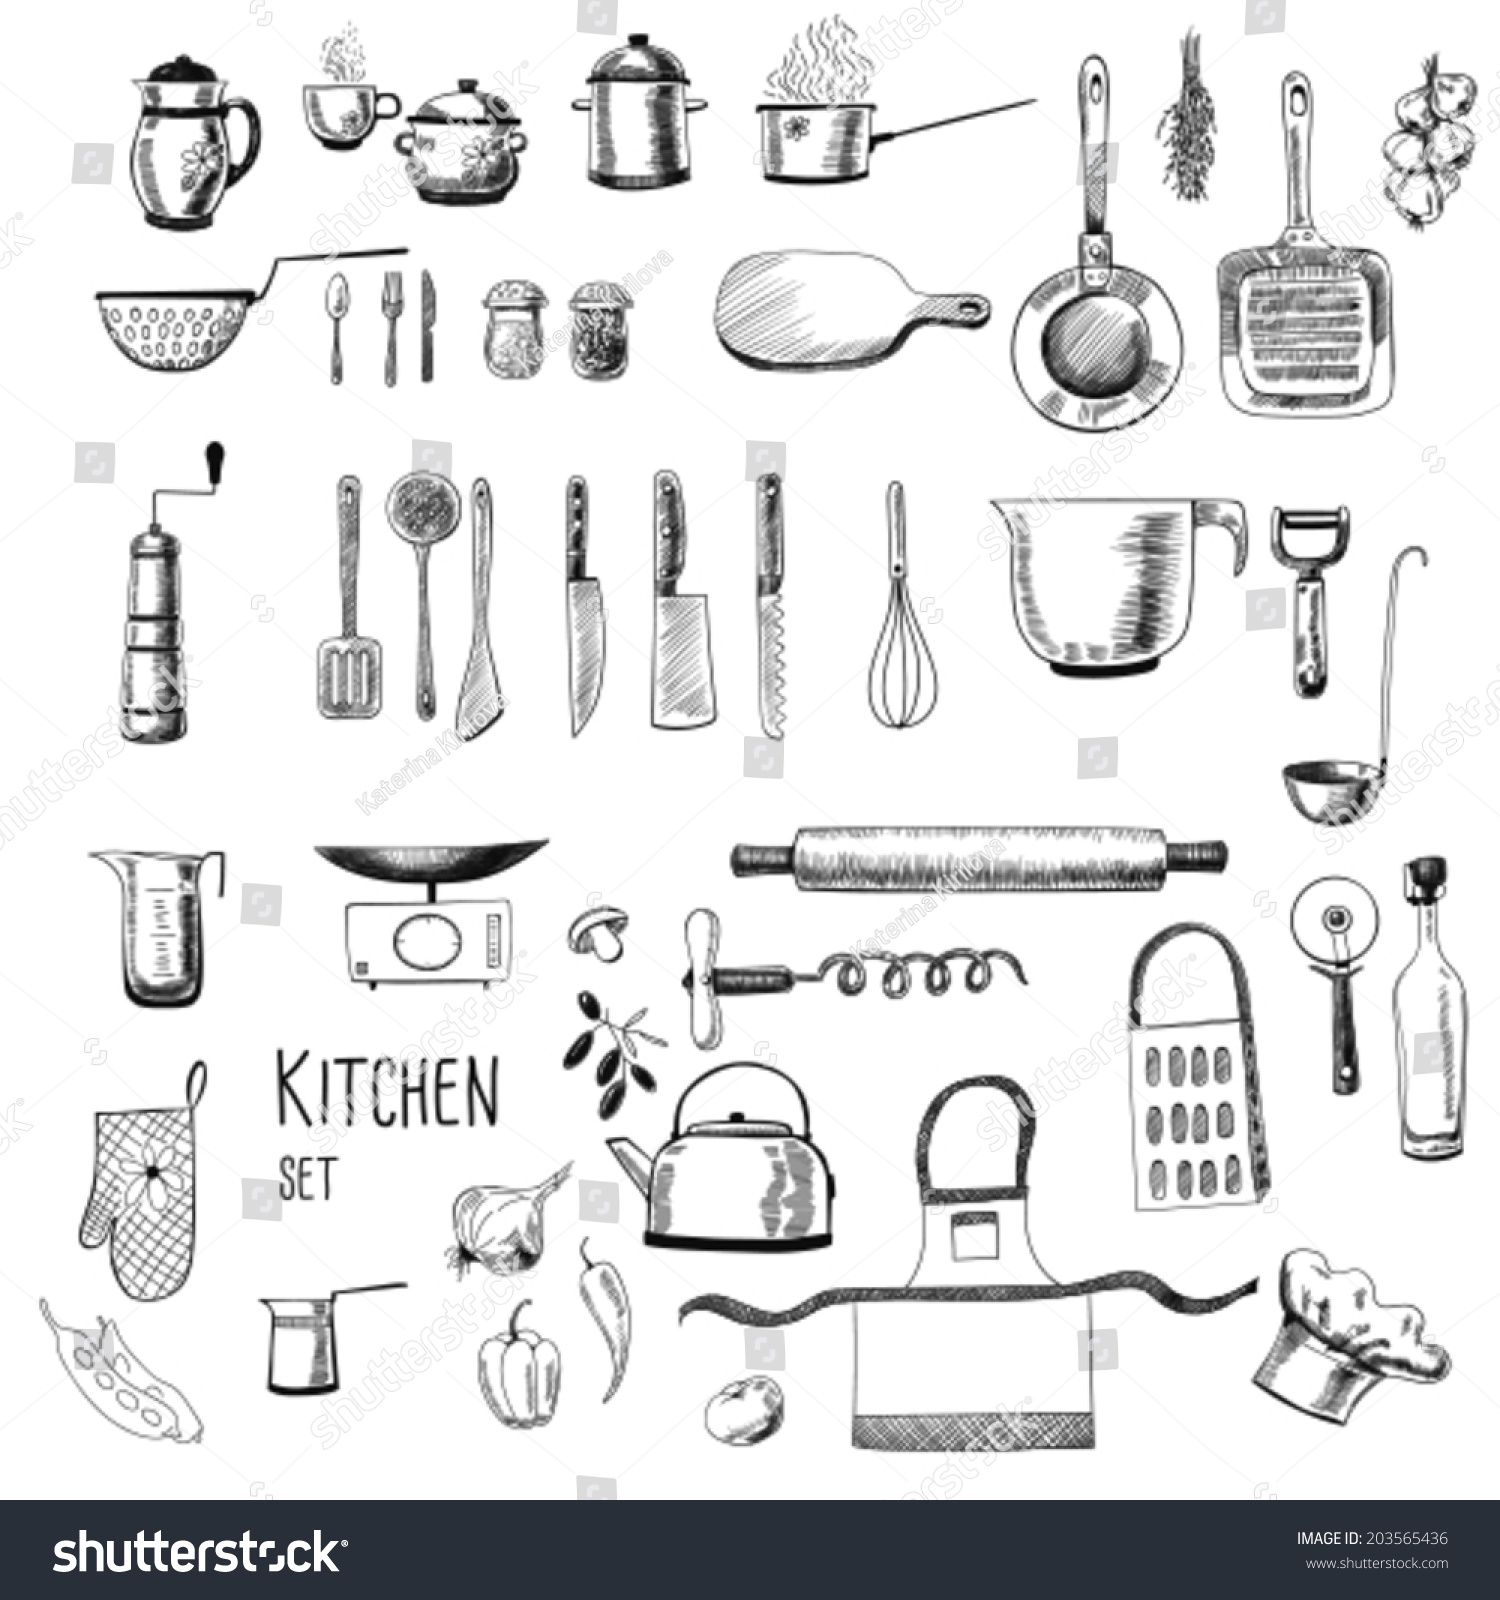 Kitchen Set Large Collection Of Hand Drawn Kitchen Related